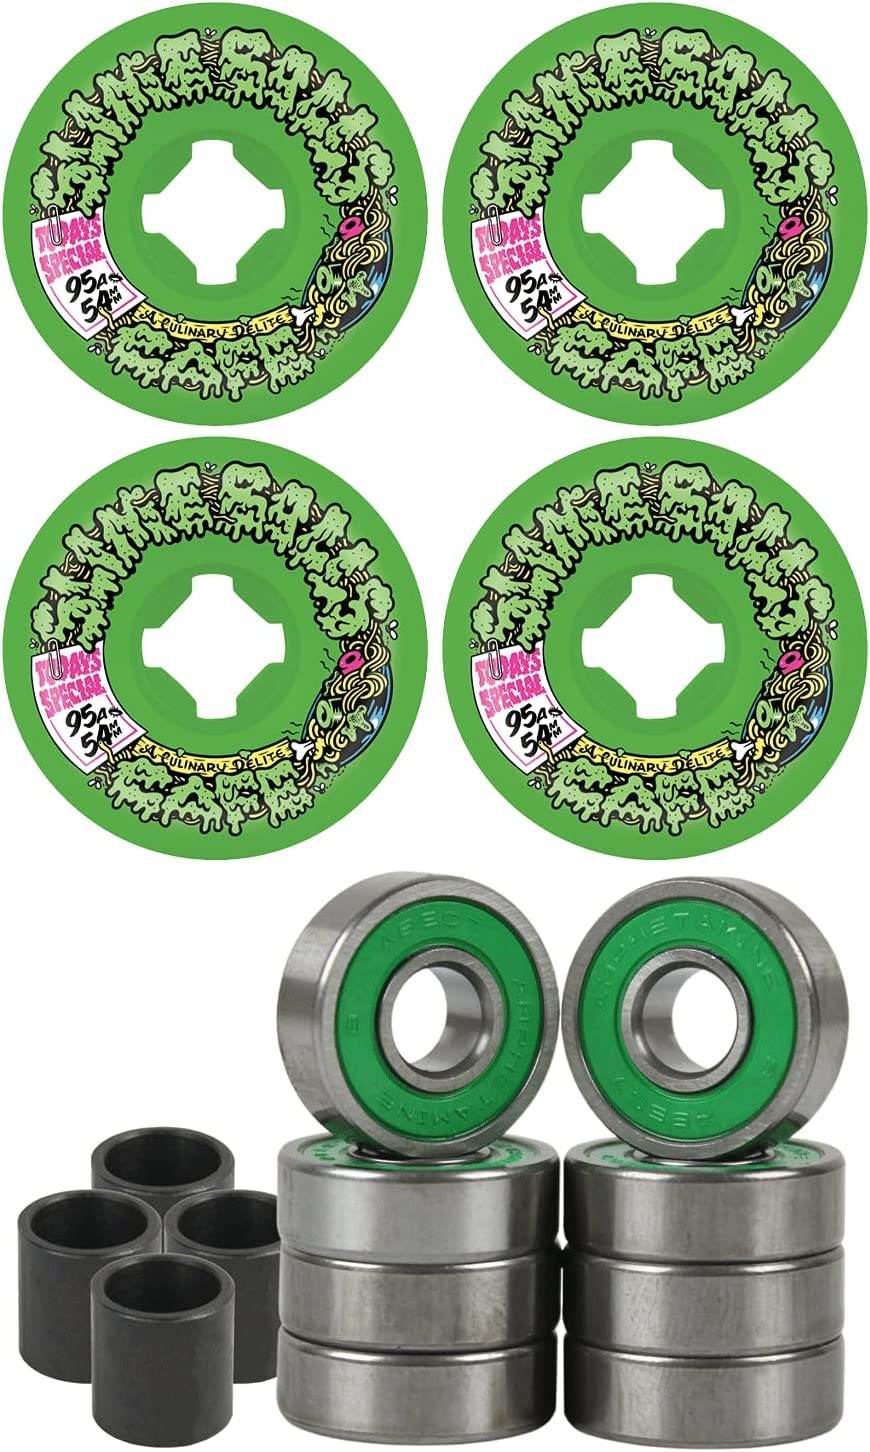 Slime Balls Skateboard Wheels Limited Special Price 54mm Double with Take A Austin Mall Vomit Mini